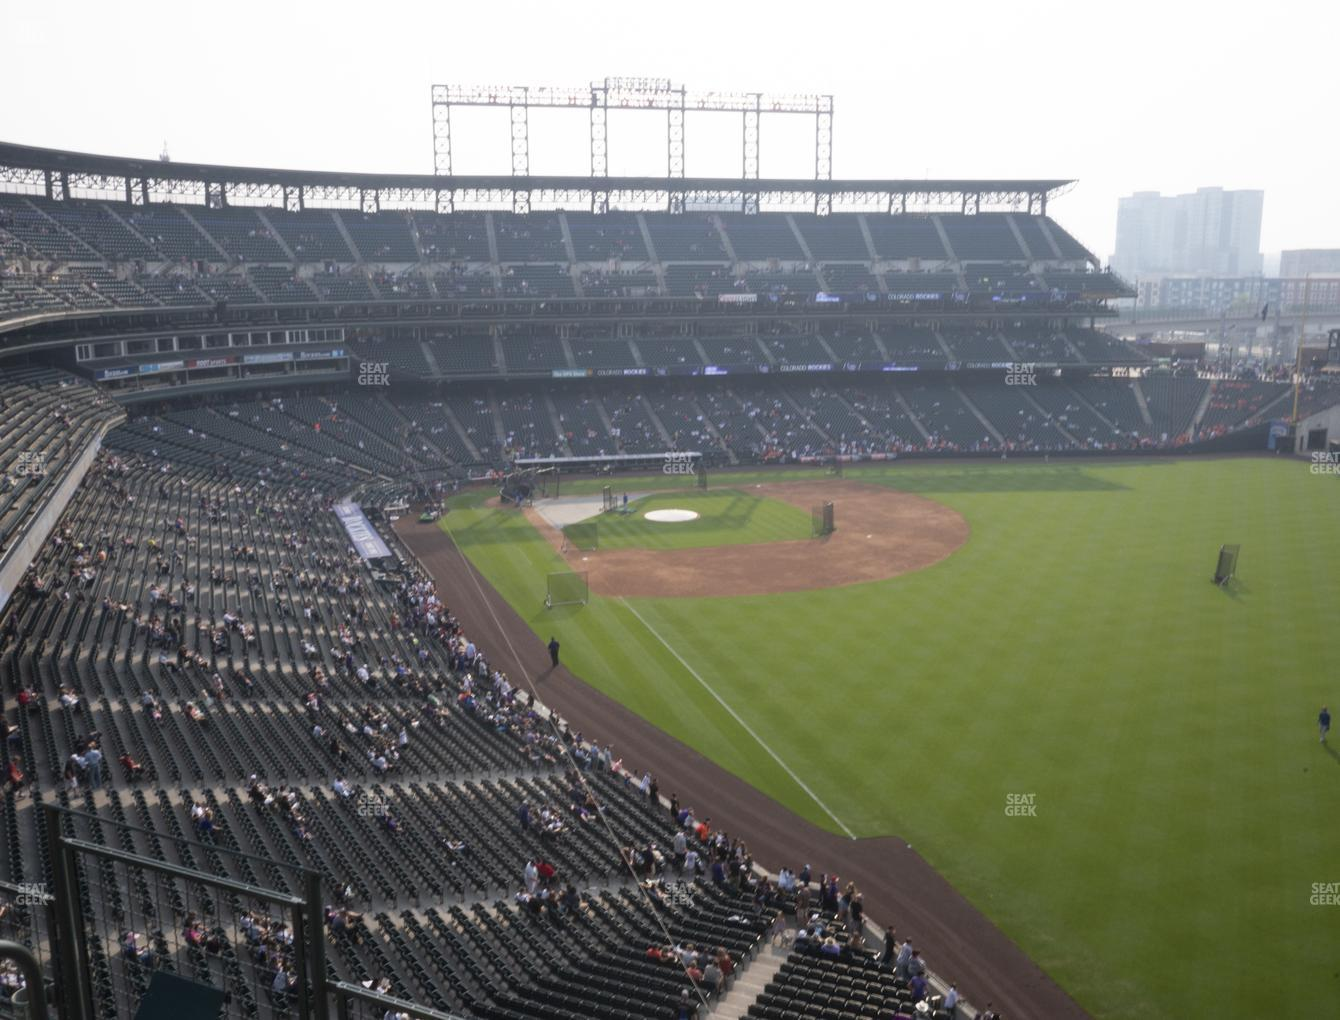 Colorado Rockies at Coors Field Lower 311 View